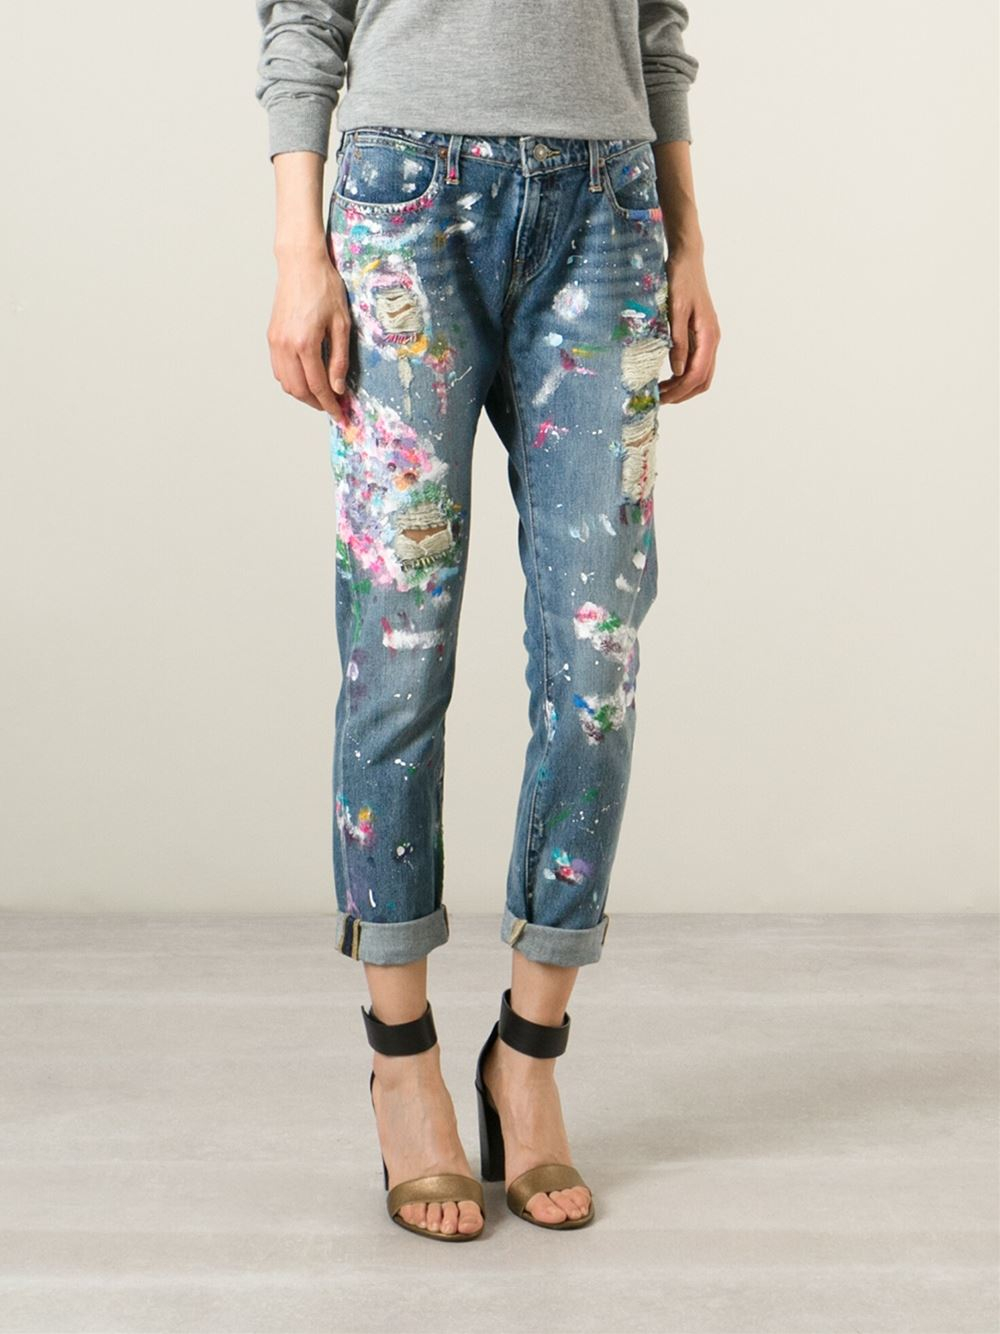 polo ralph lauren distressed paint splatter jeans in blue